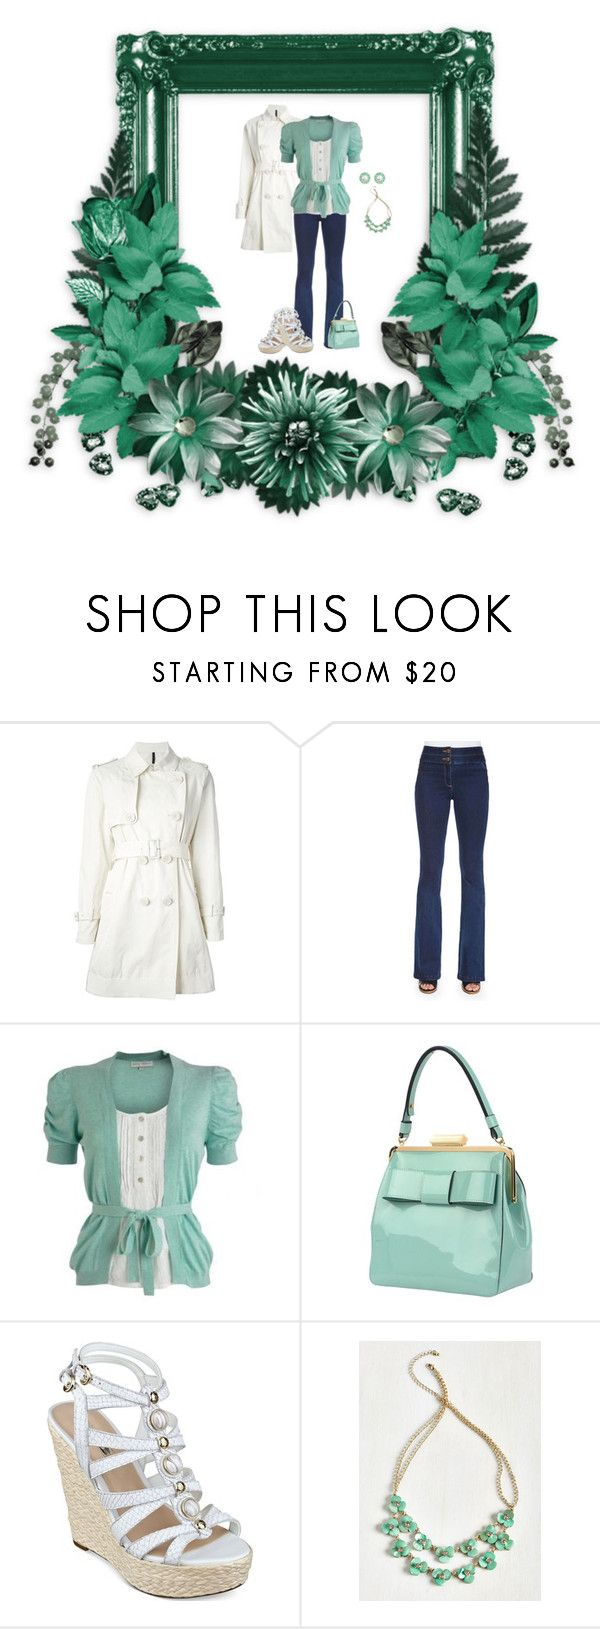 """""""Mint Green (2062)"""" by trufflelover ❤ liked on Polyvore featuring Moncler, Veronica Beard, Rocha.John Rocha, Orla Kiely and GUESS"""